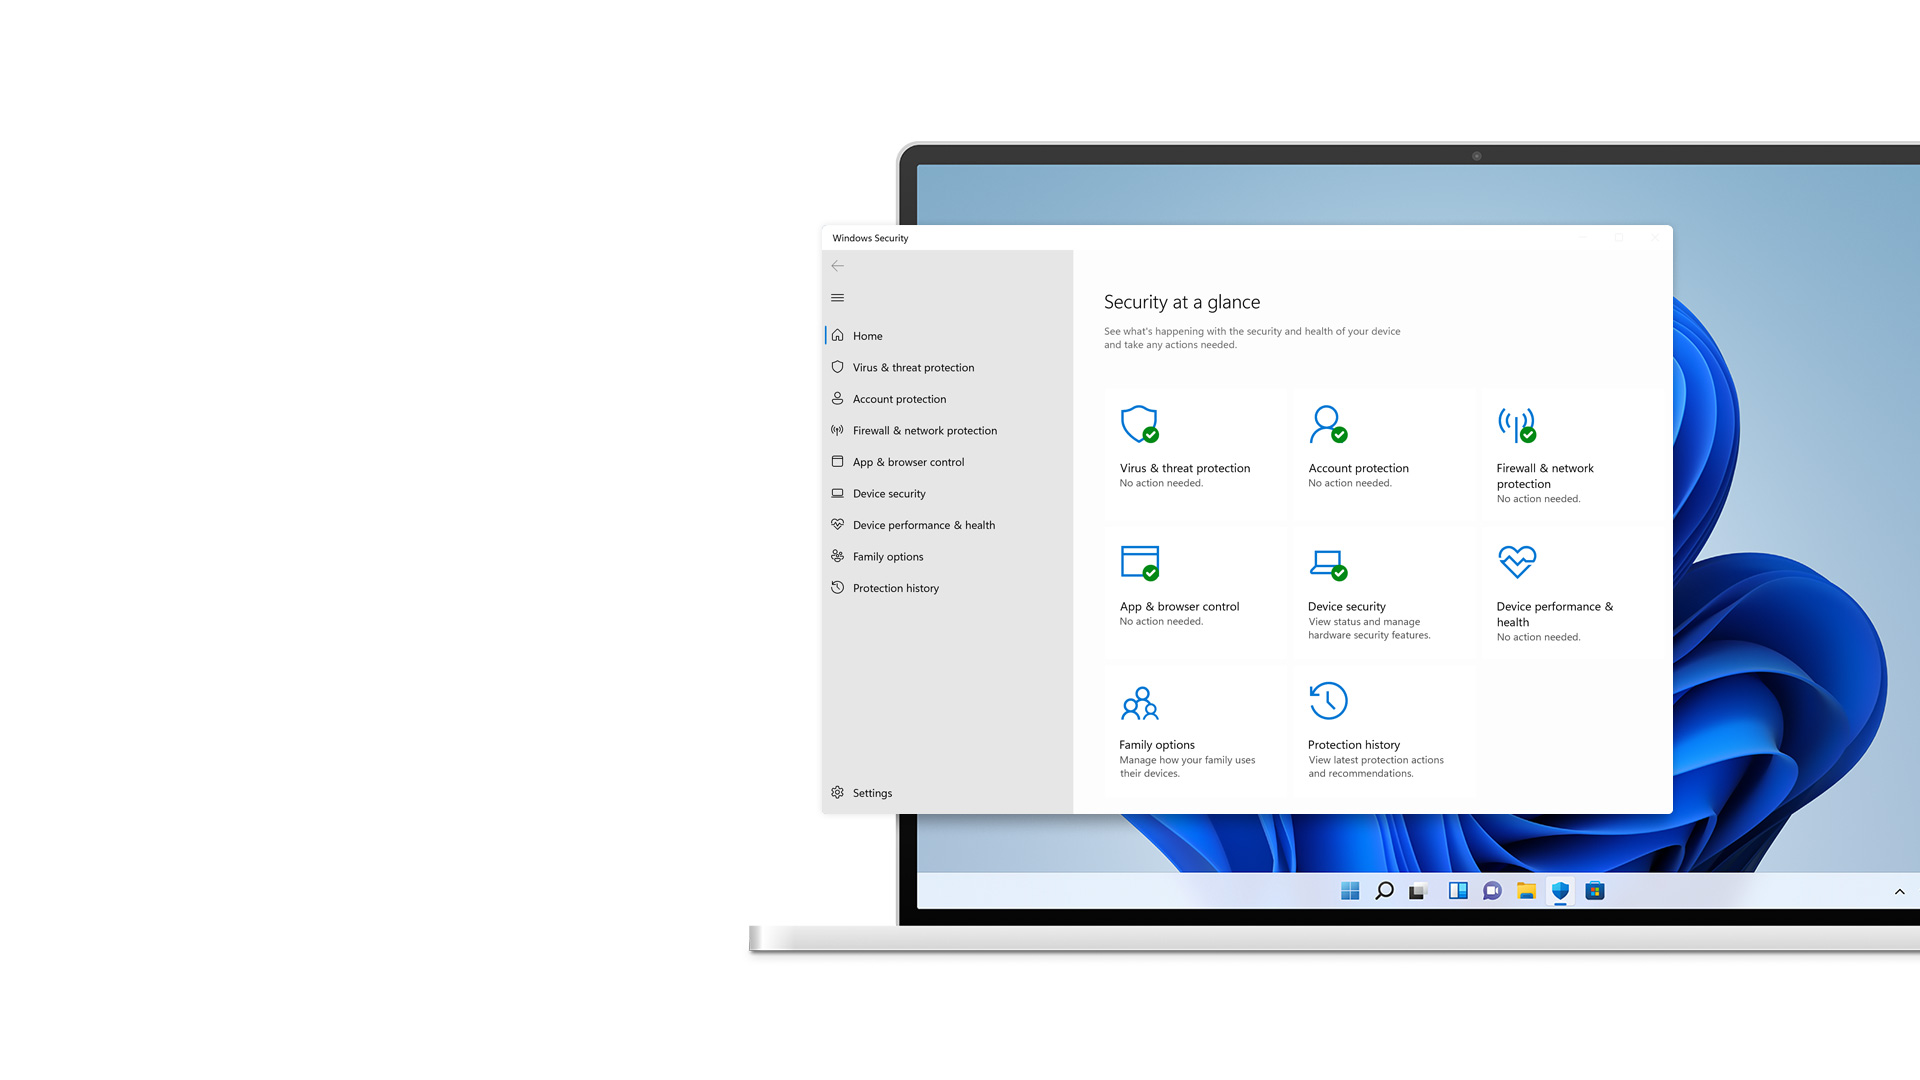 Windows 11 Security at a glance screen with bloom in background